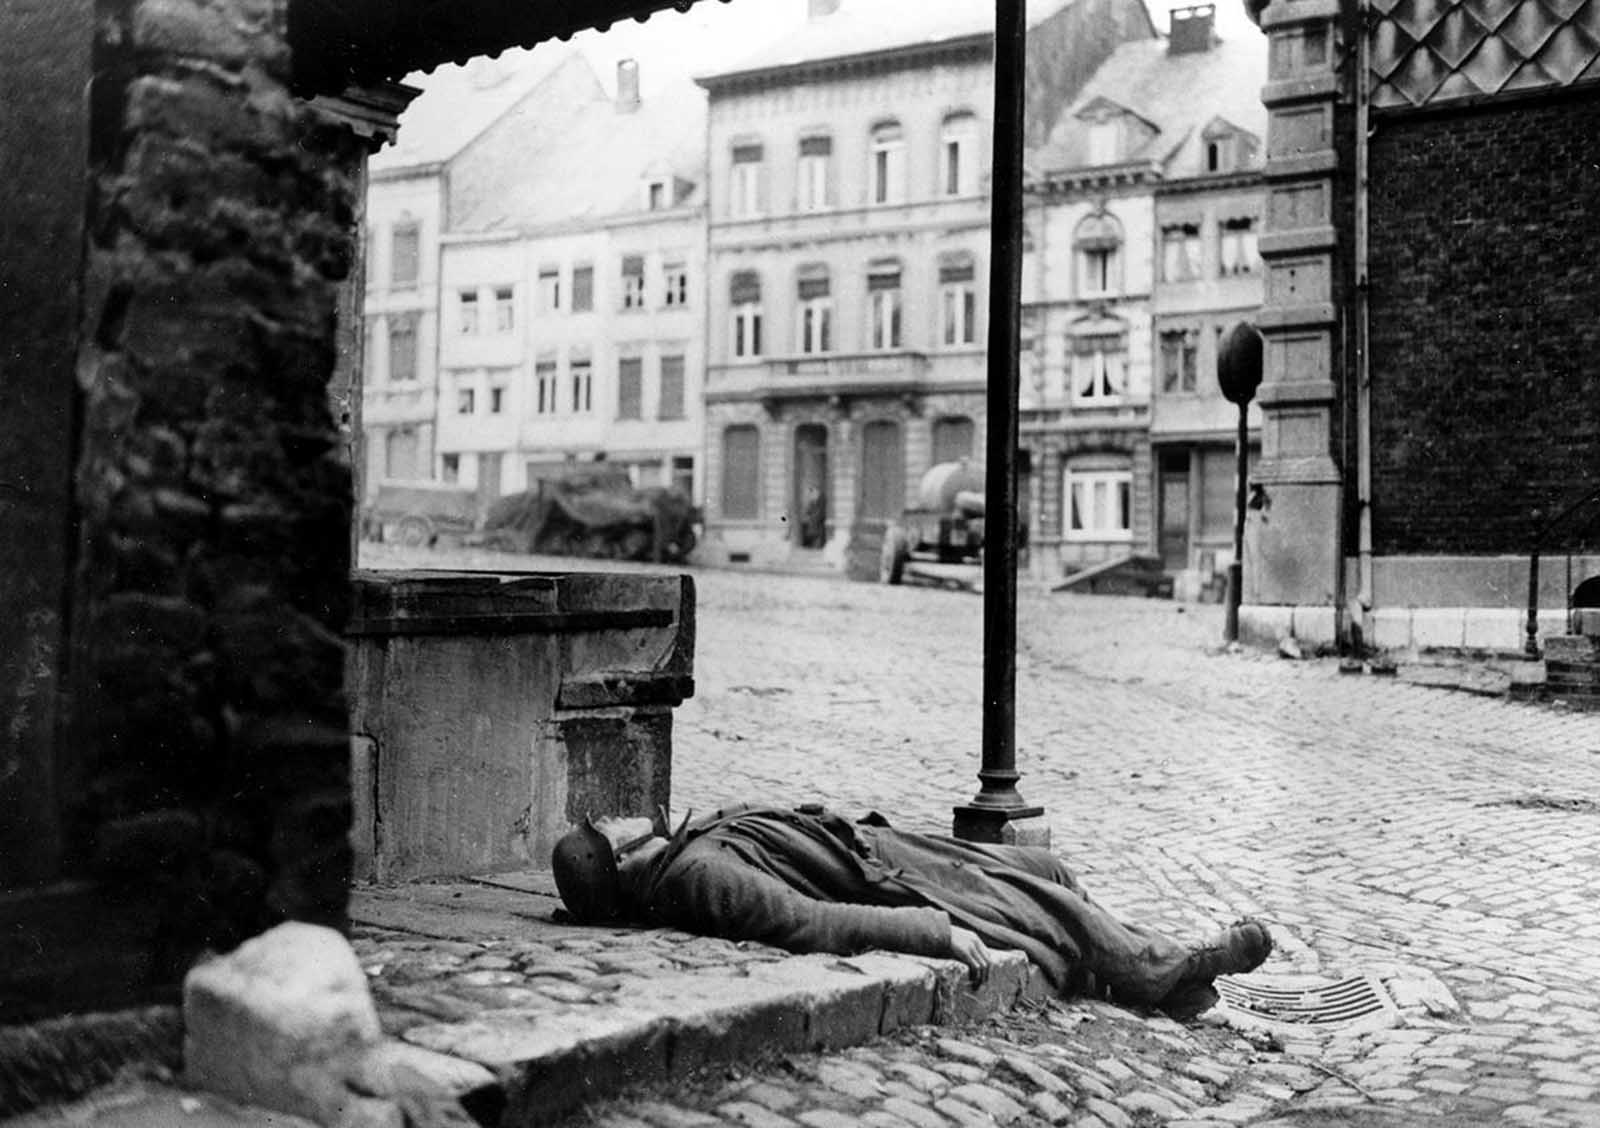 A dead German soldier, killed during the German counter offensive in the Belgium-Luxembourg salient, is left behind on a street corner in Stavelot, Belgium, on January 2, 1945, as fighting moves on during the Battle of the Bulge.